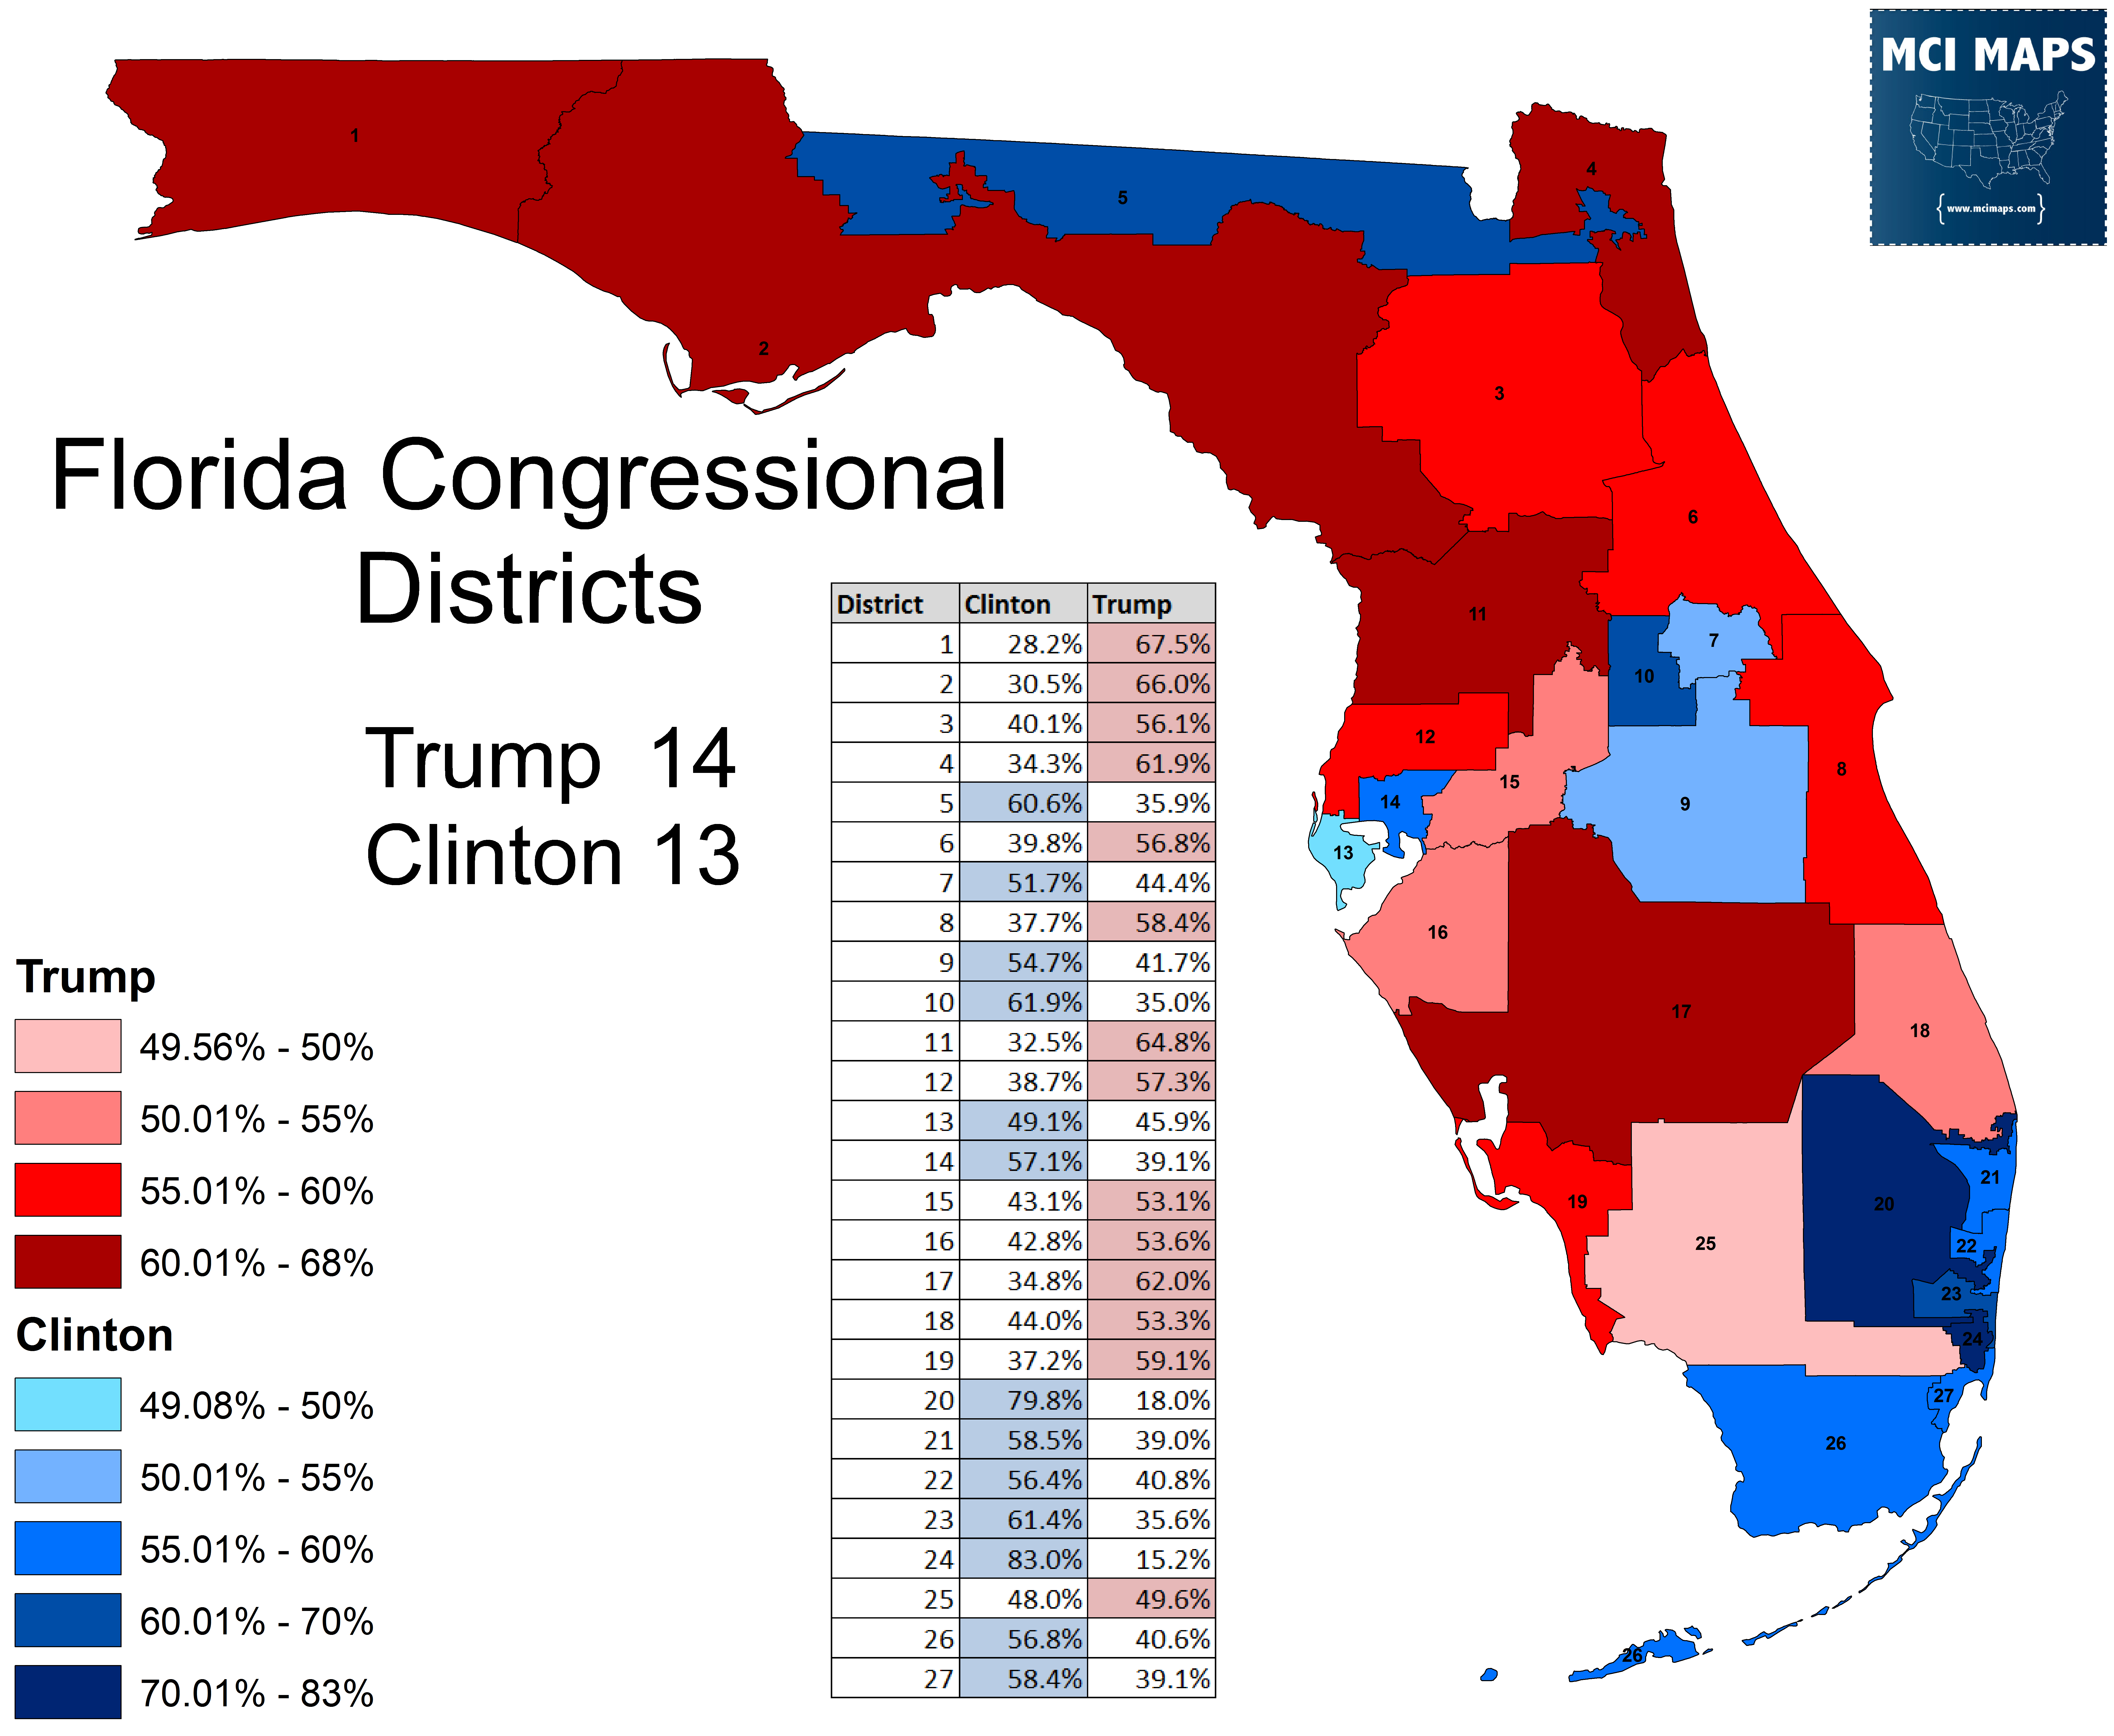 Florida's Congressional District Rankings For 2018 – Mci Maps - Florida's Congressional District Map